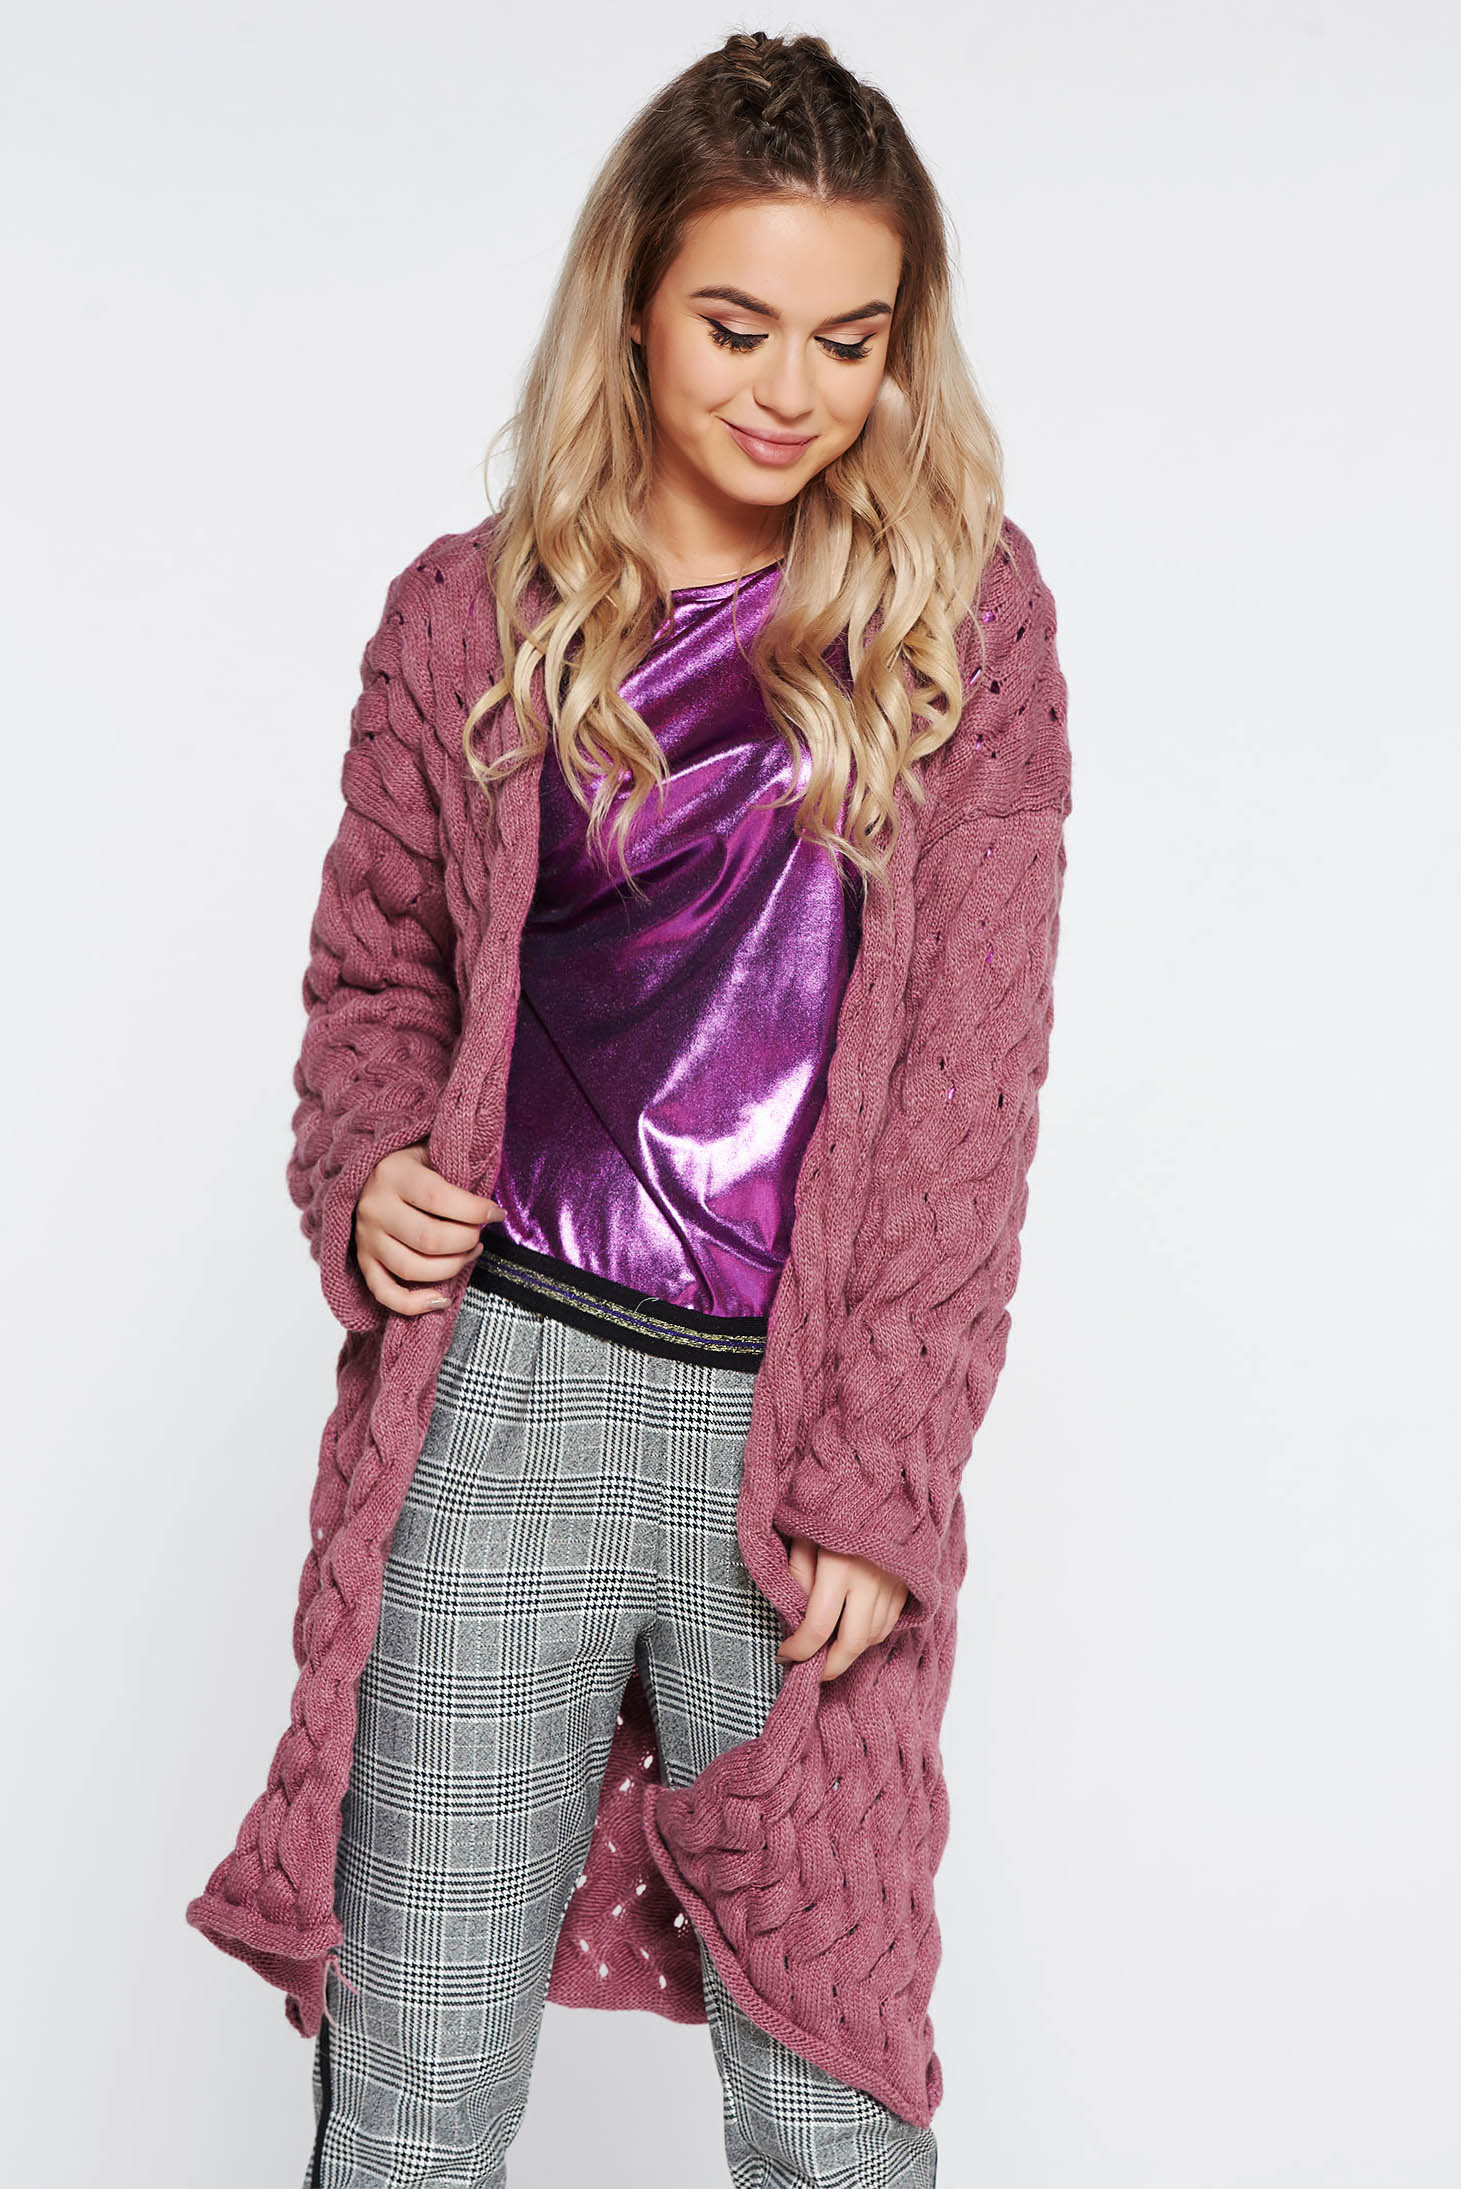 SunShine purple casual cotton knitted cardigan with easy cut